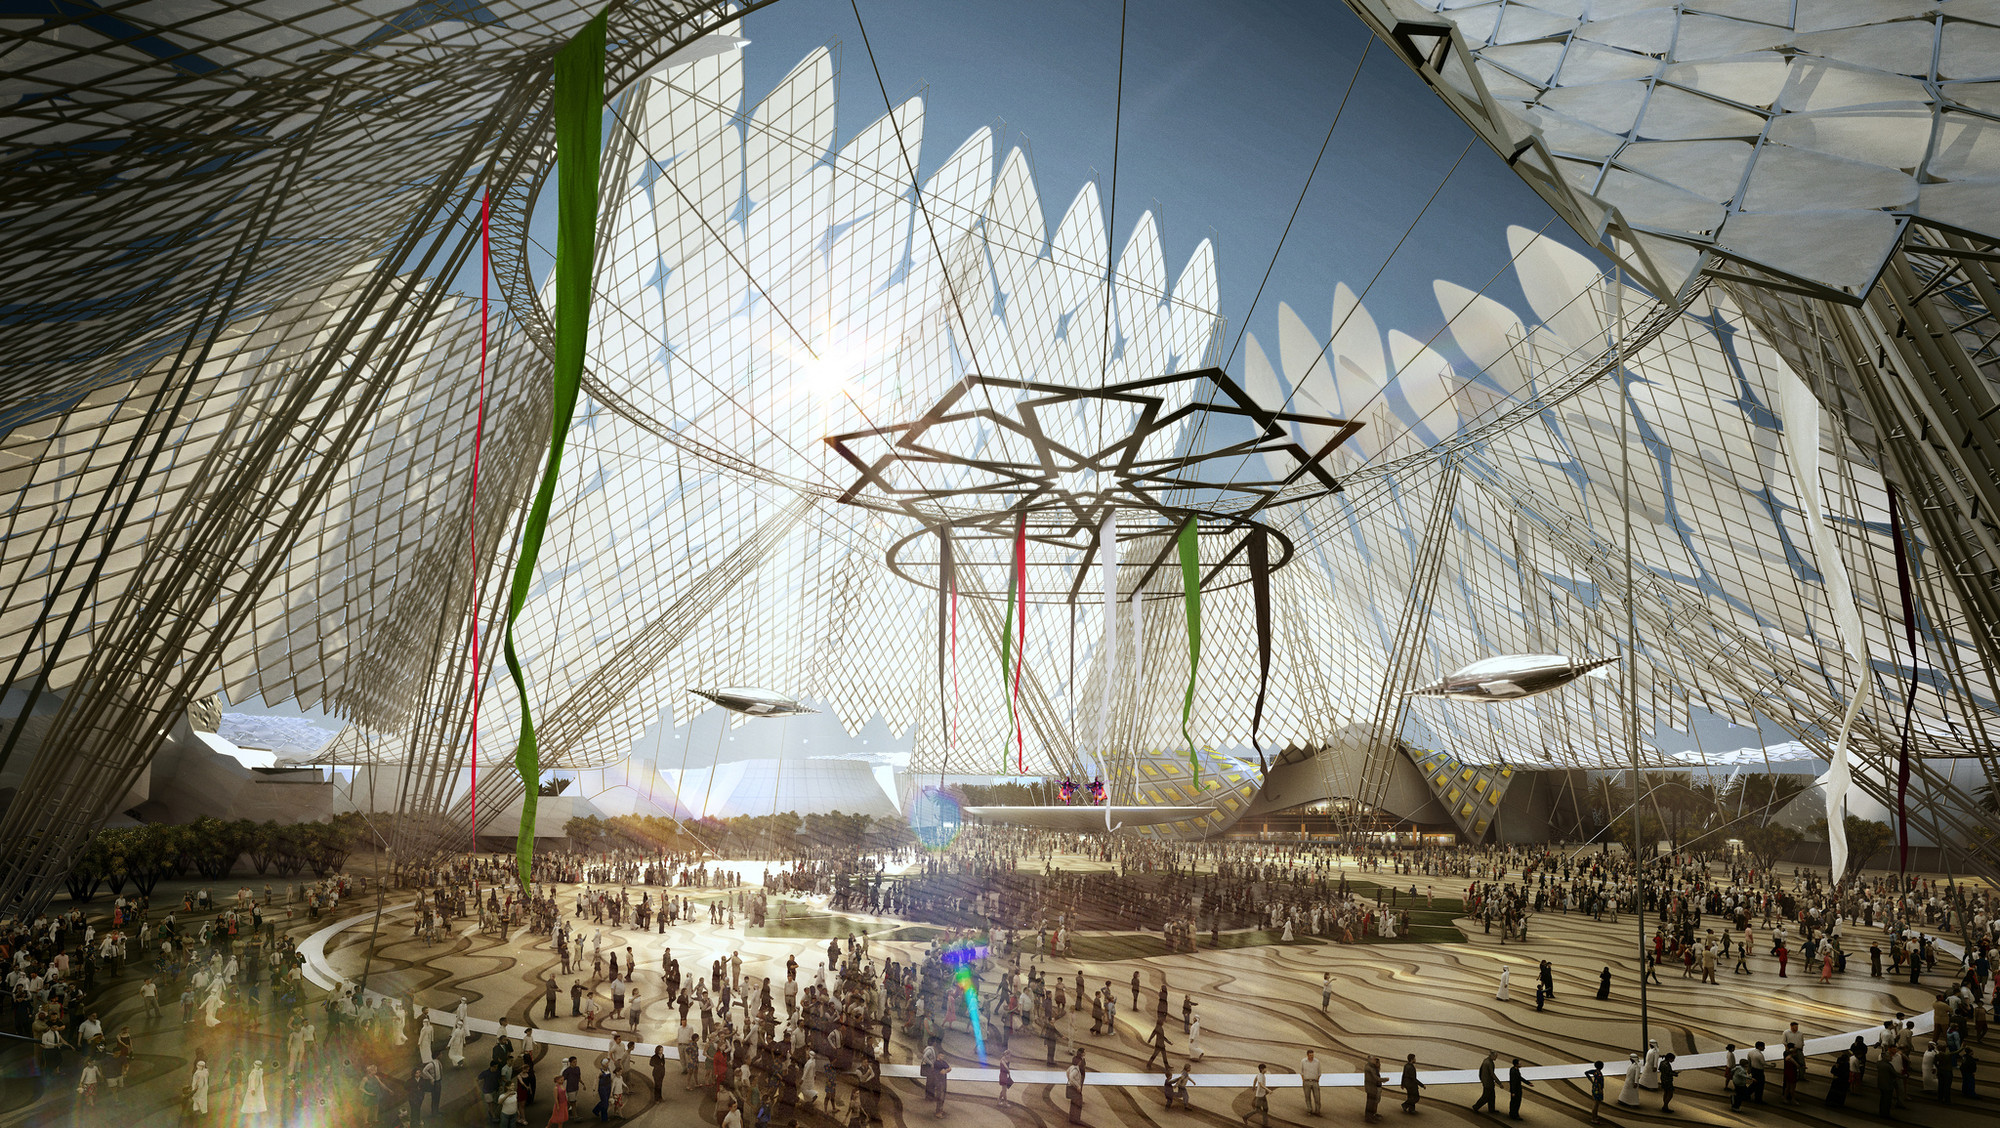 Expo 2020 Stands For : Gallery of dubai wins world expo bid with hok